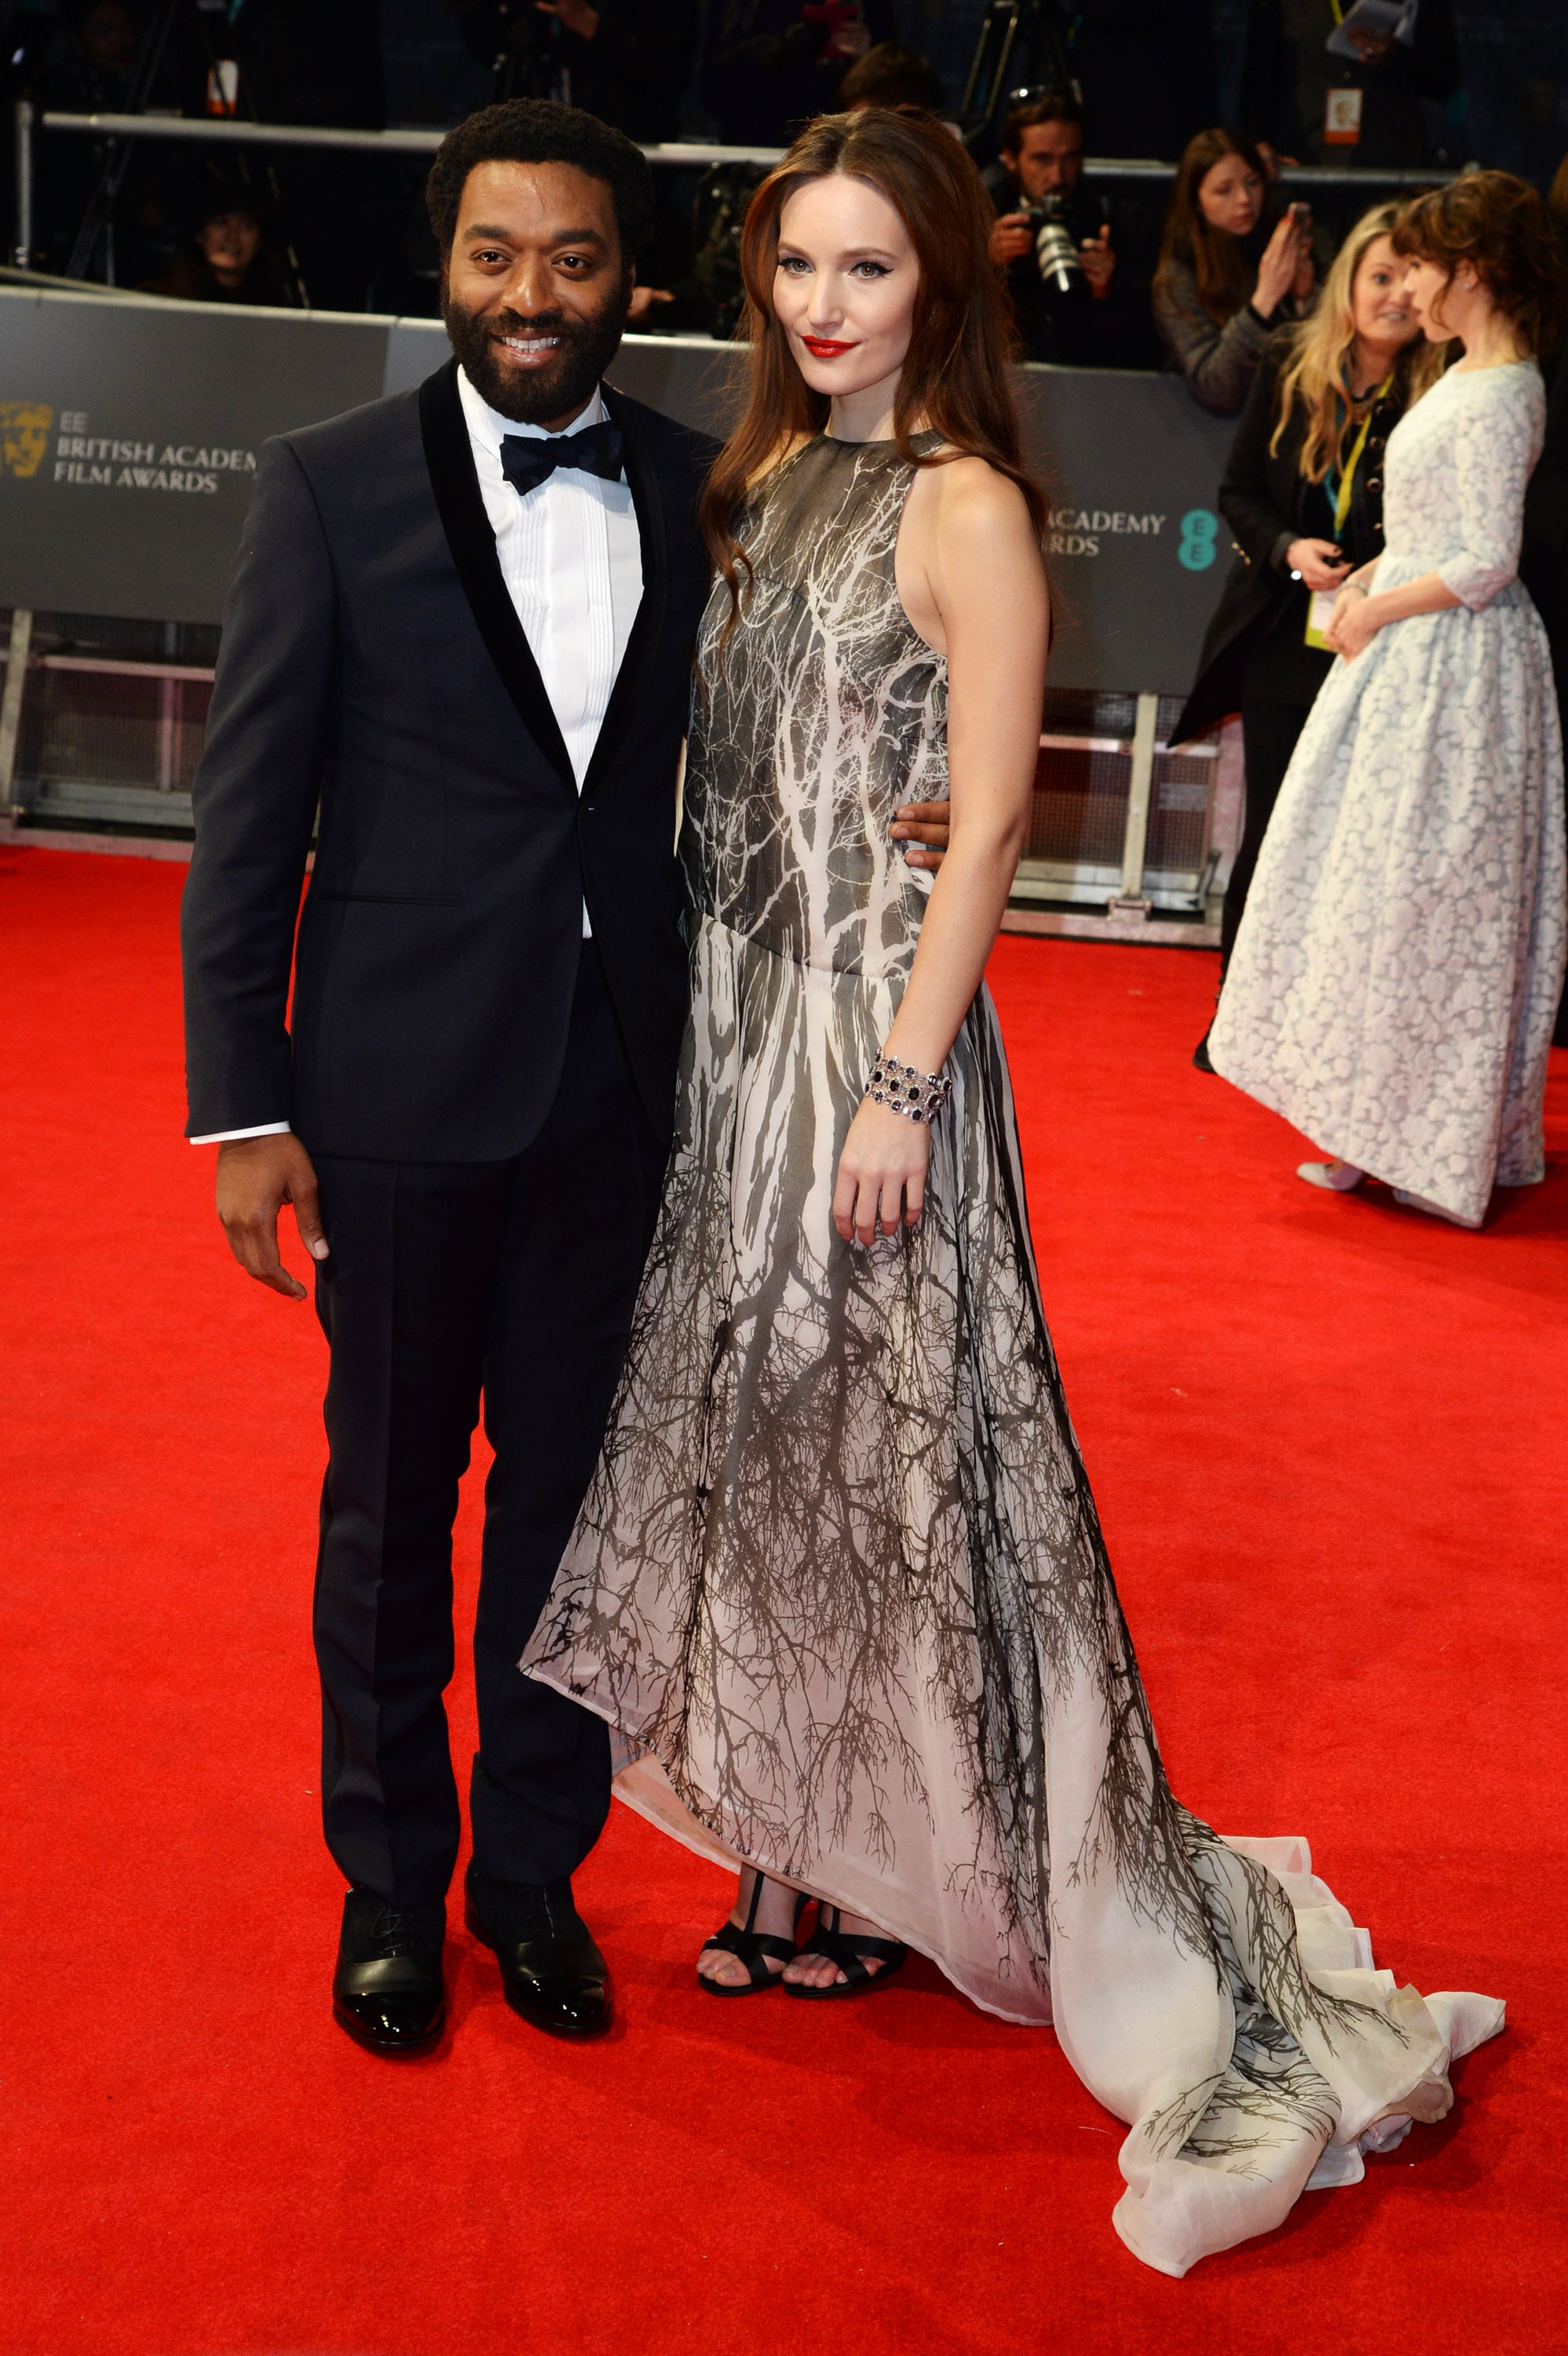 Chiwetel Ejiofor at the 2014 BAFTA Awards.